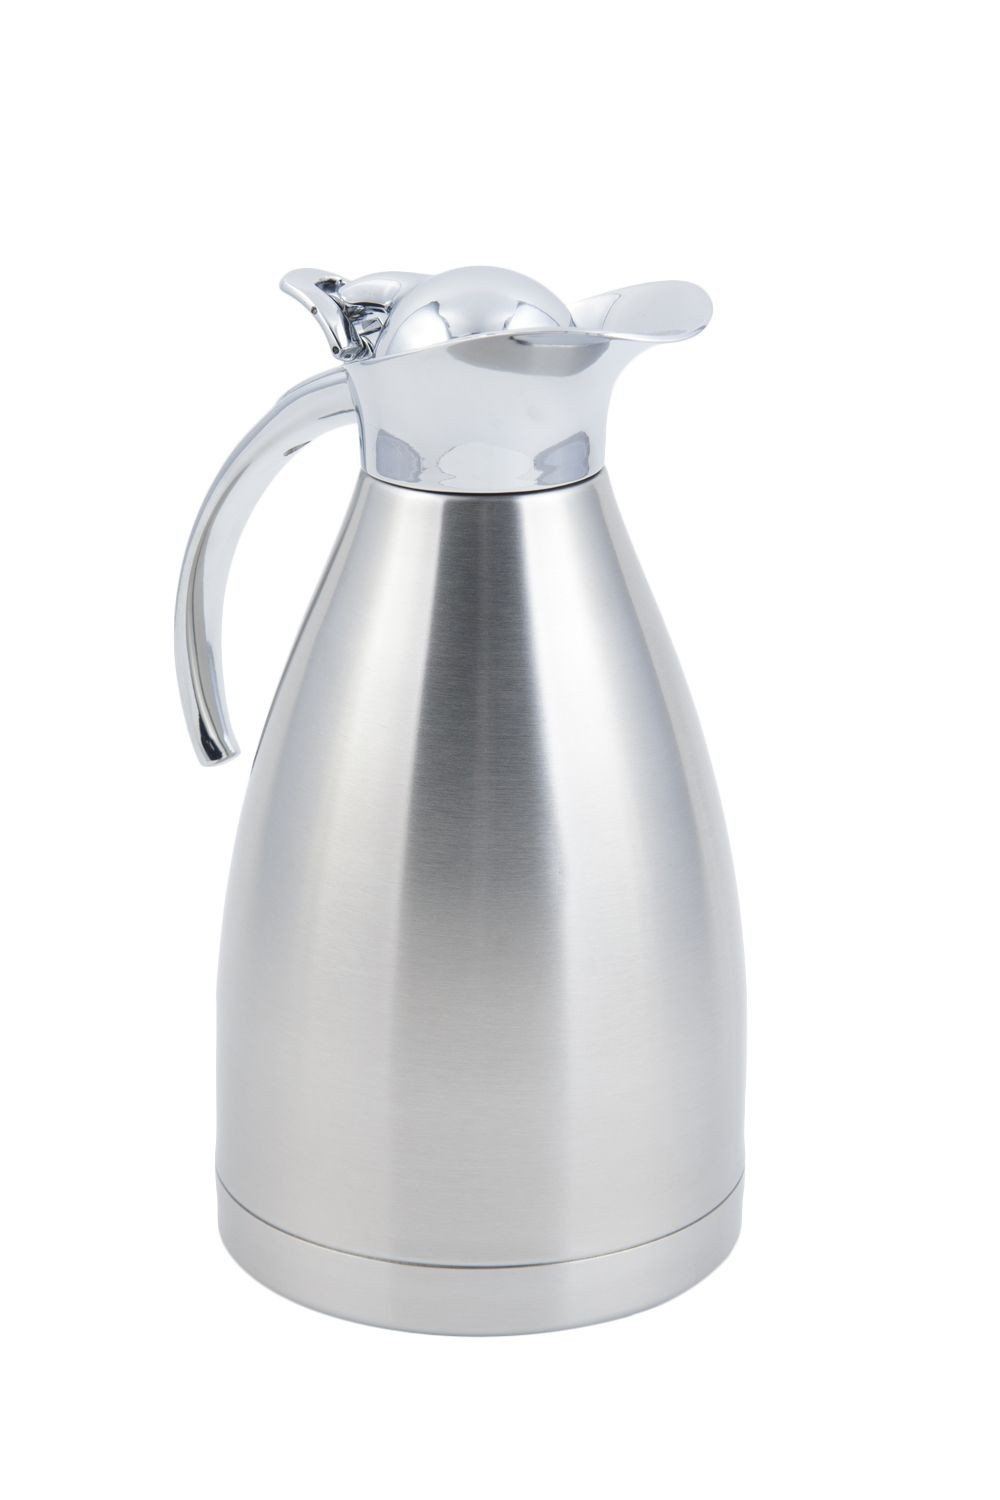 Bon Chef 4056S Stainless Steel Insulated Server with Satin Finish, 48 oz., Set of 6